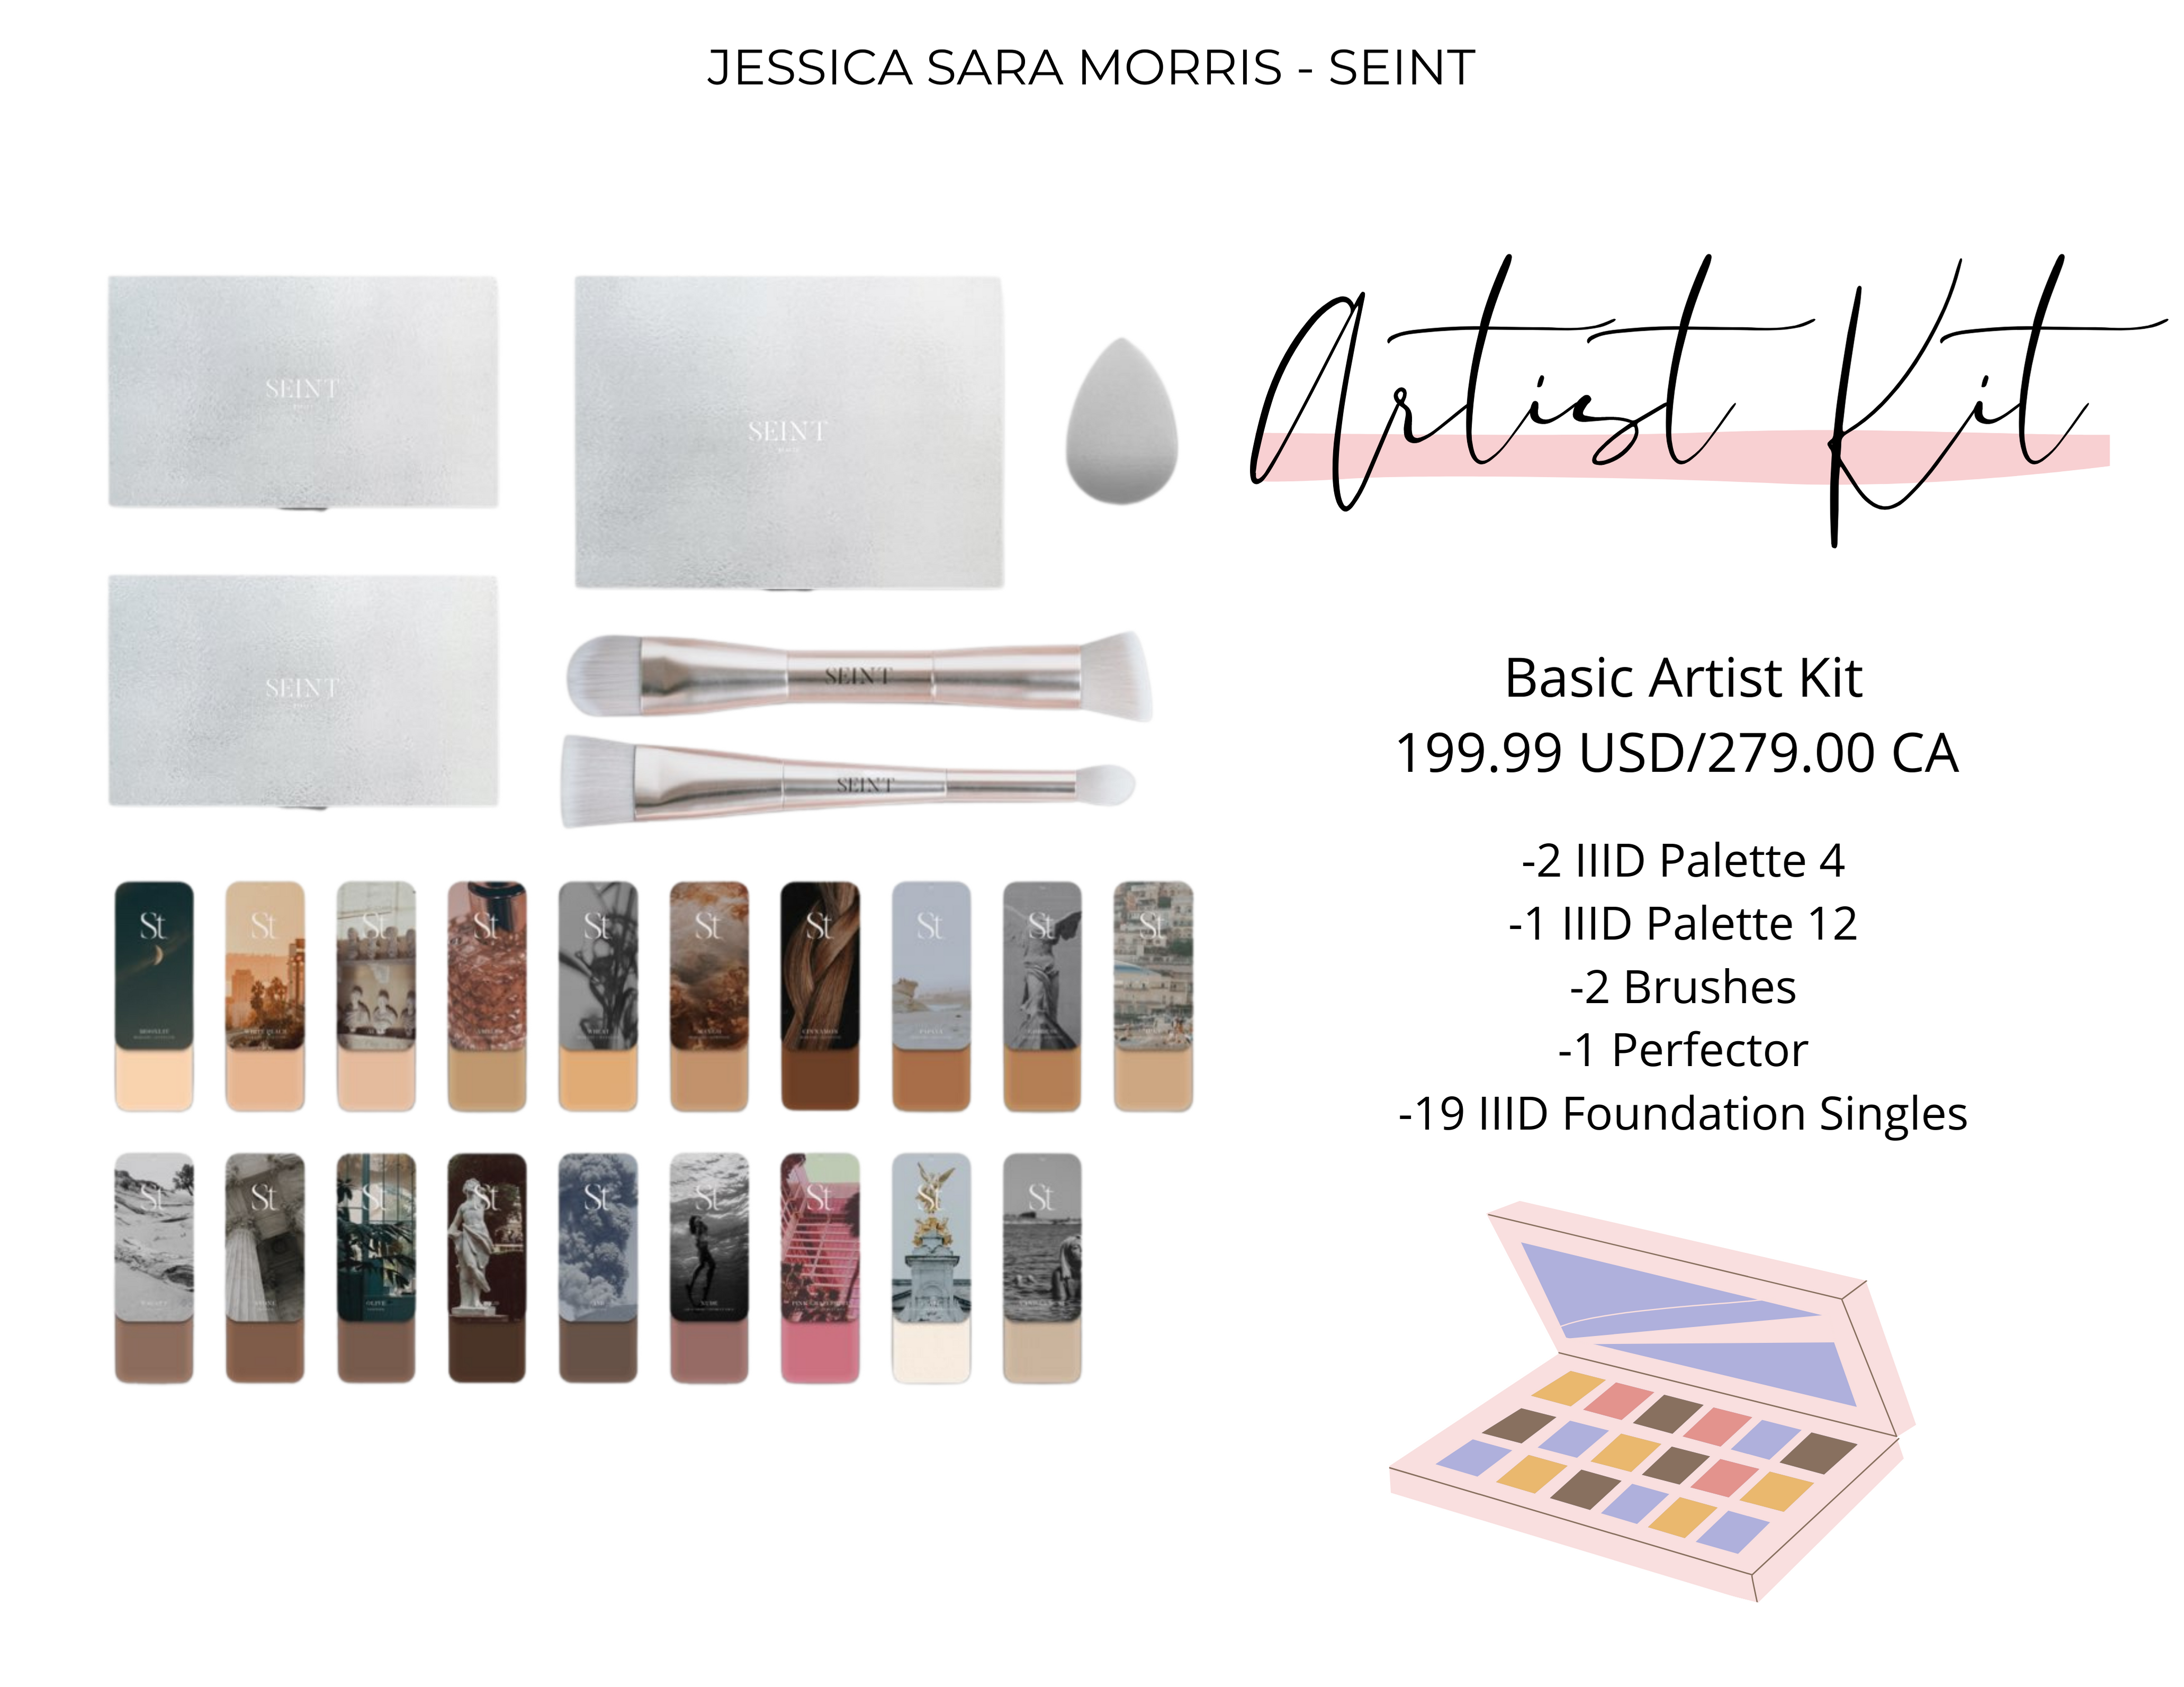 Become a Saint Artist. Seint makeup, formerly known as Maskcara, is effortless 3D makeup that is made to enhance your natural beauty